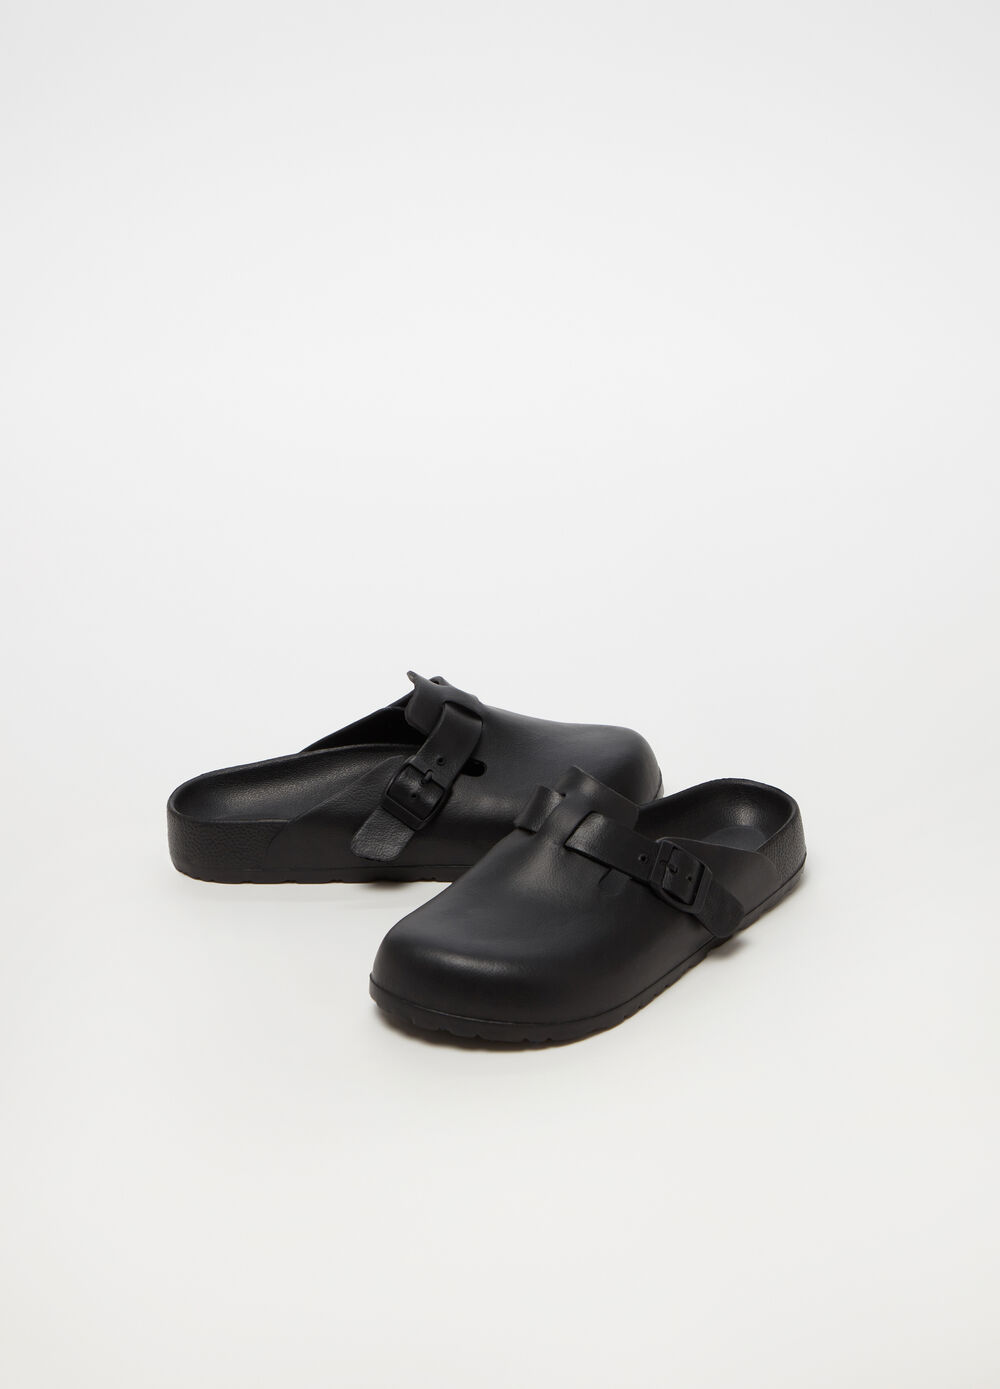 7baf78f5970e Leather-look clogs with buckle